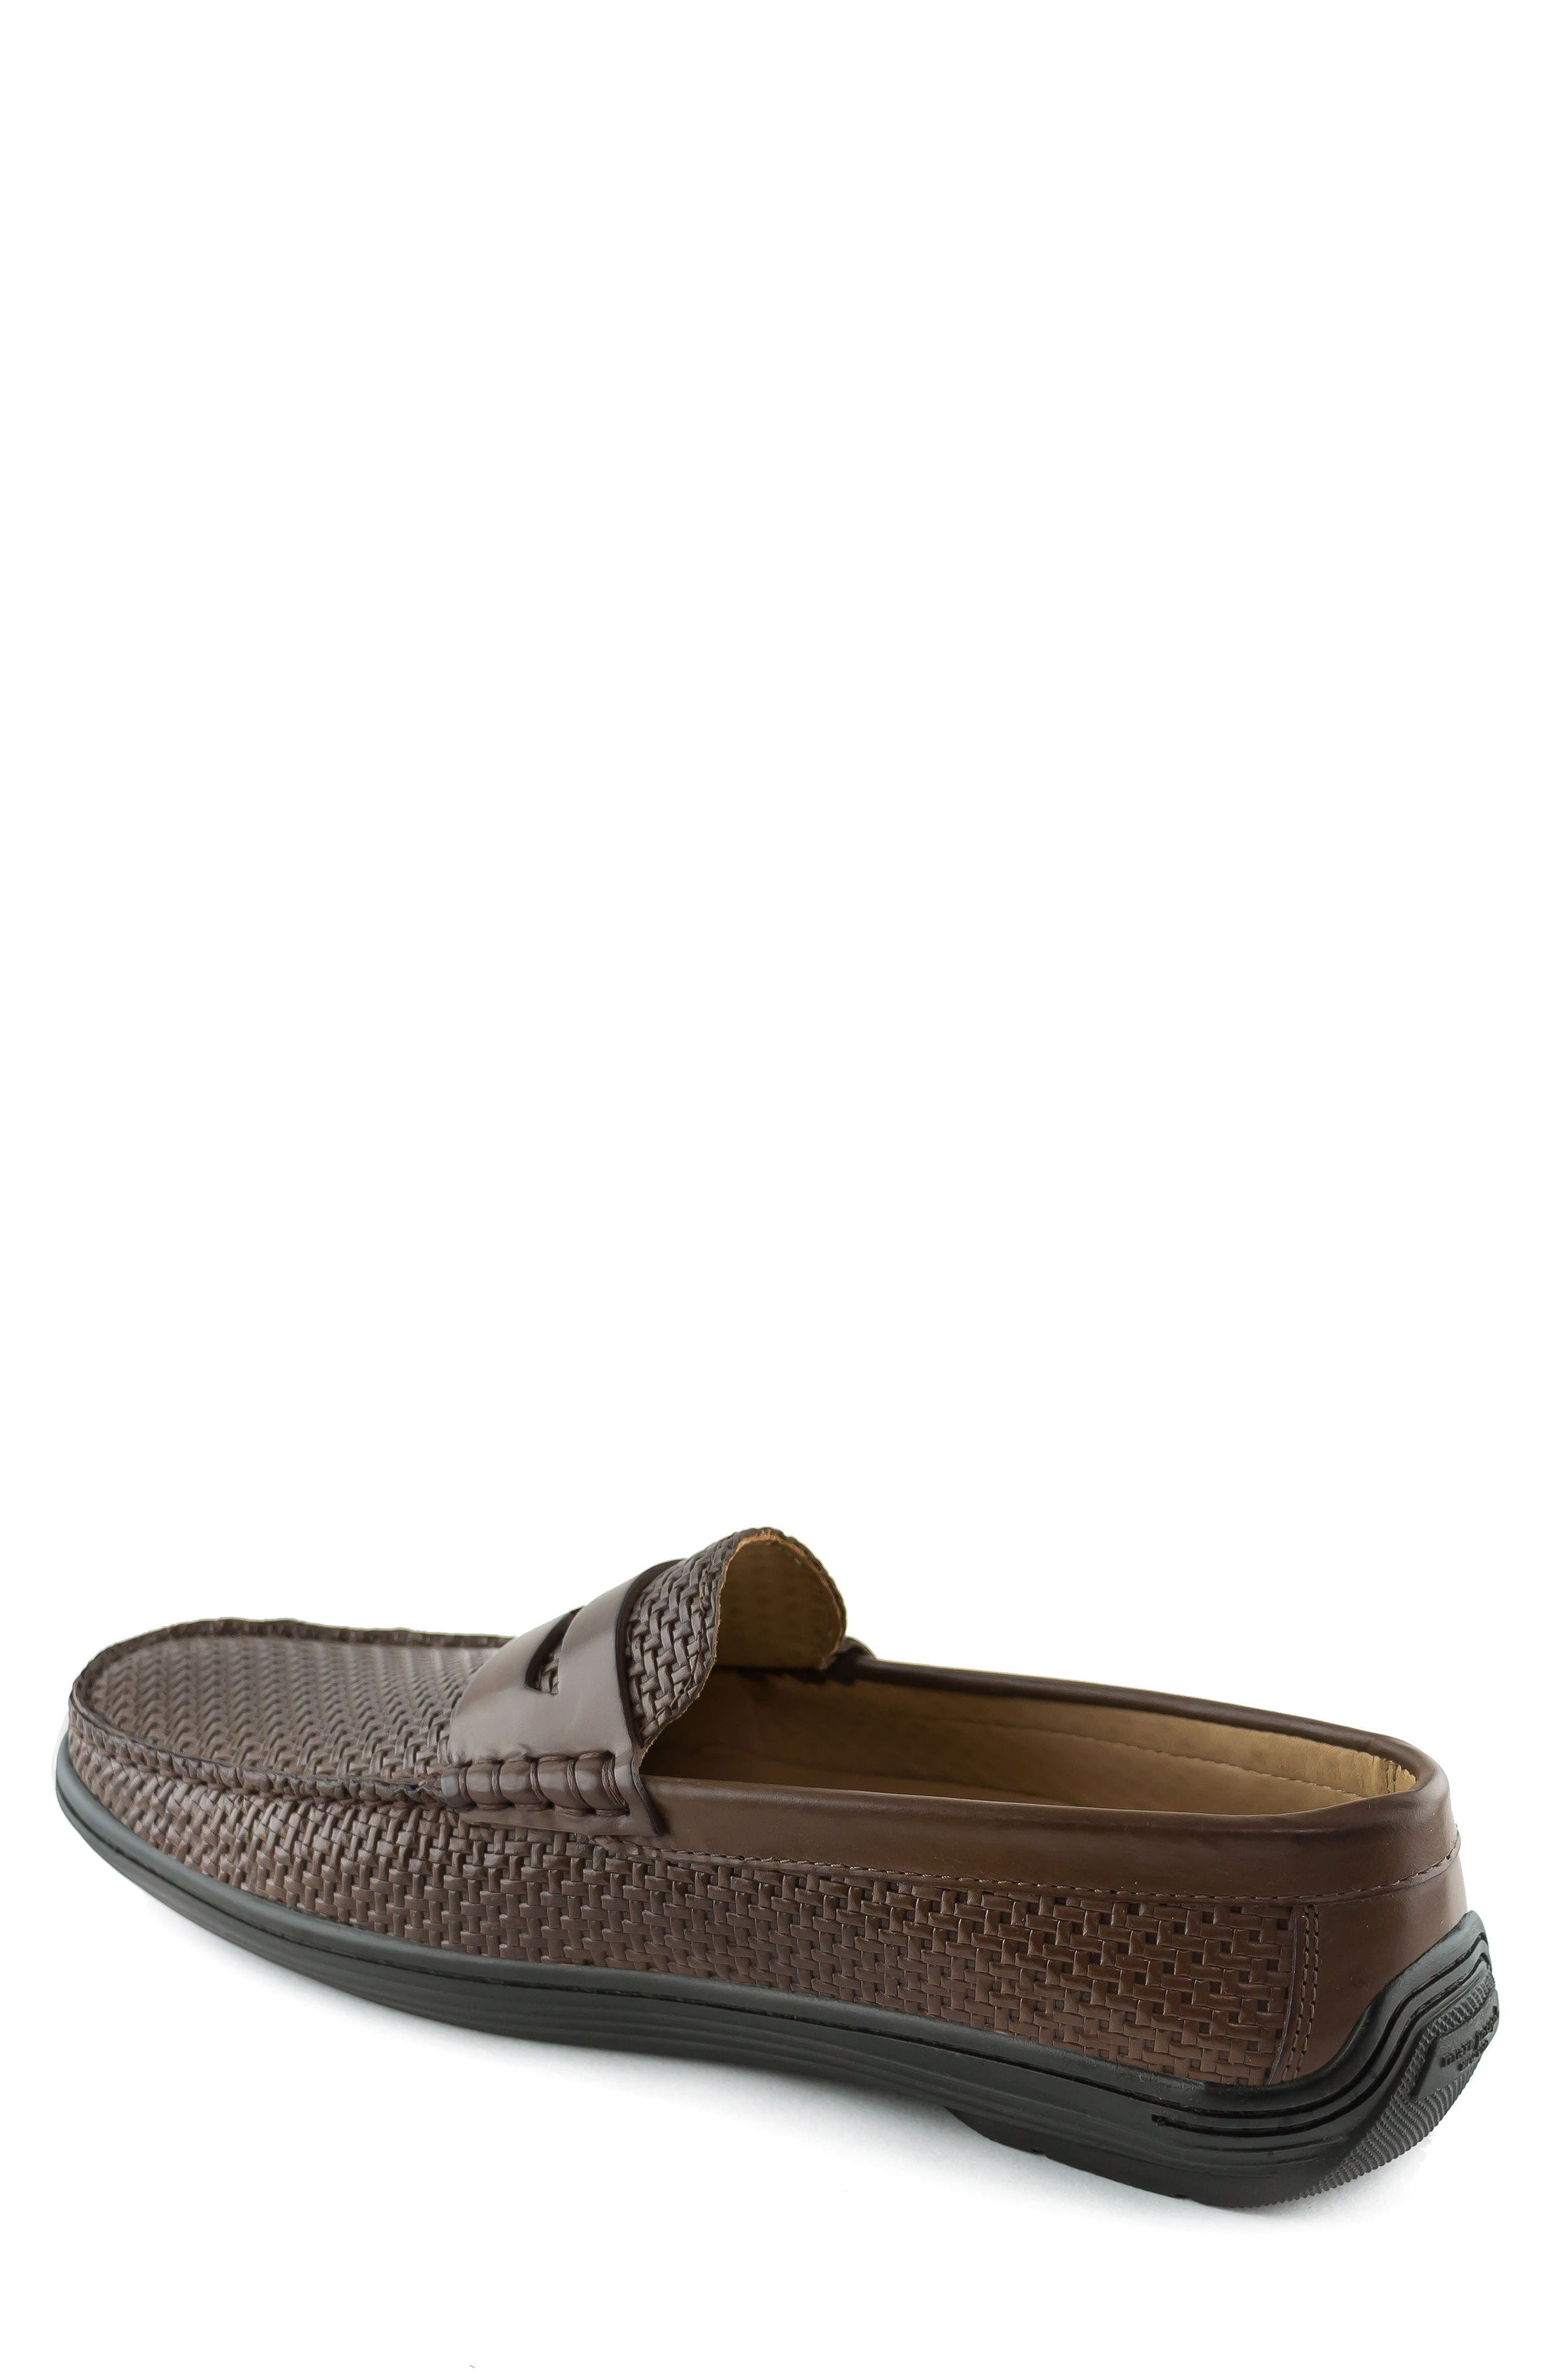 Atlantic Penny Loafer,                             Alternate thumbnail 2, color,                             Brown Leather